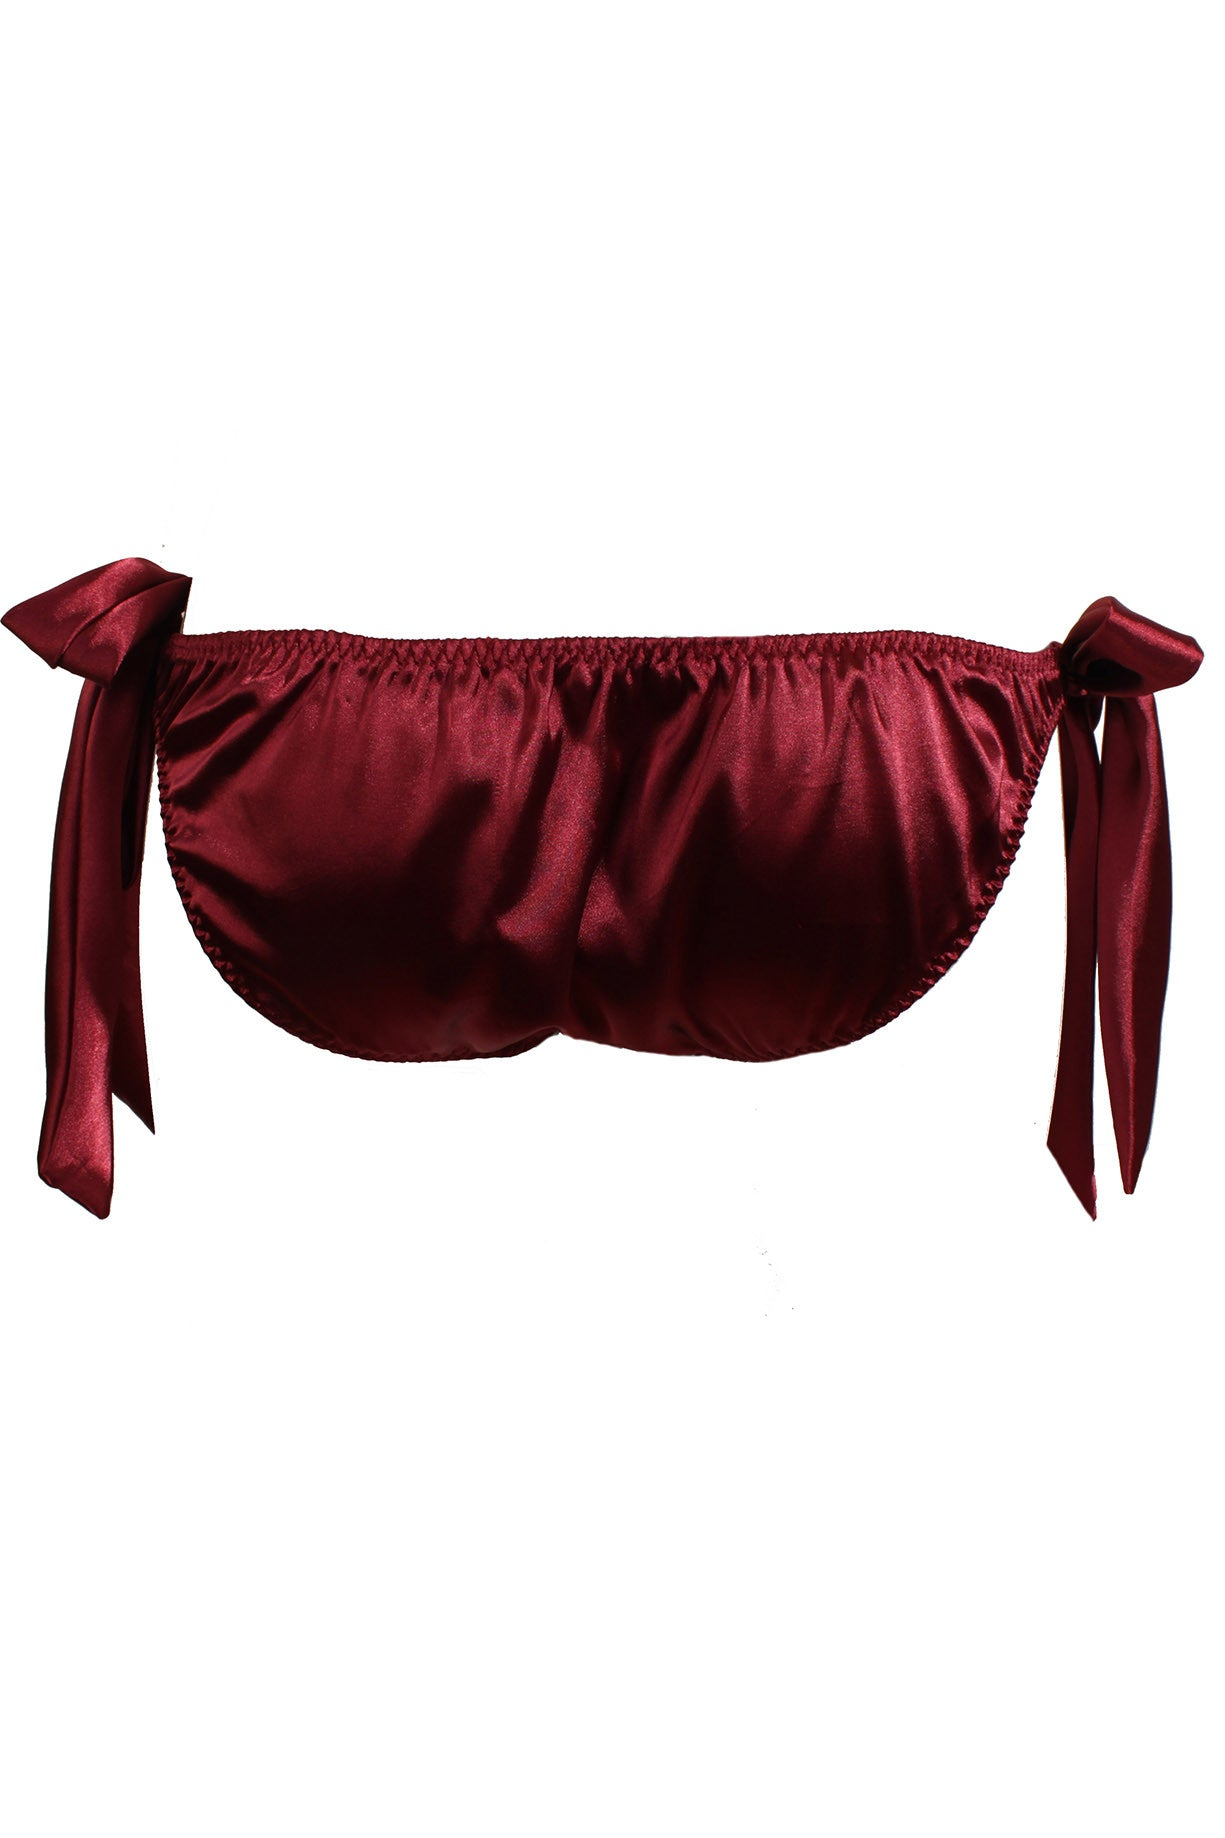 KMD Tie-Side Knicker Burgundy